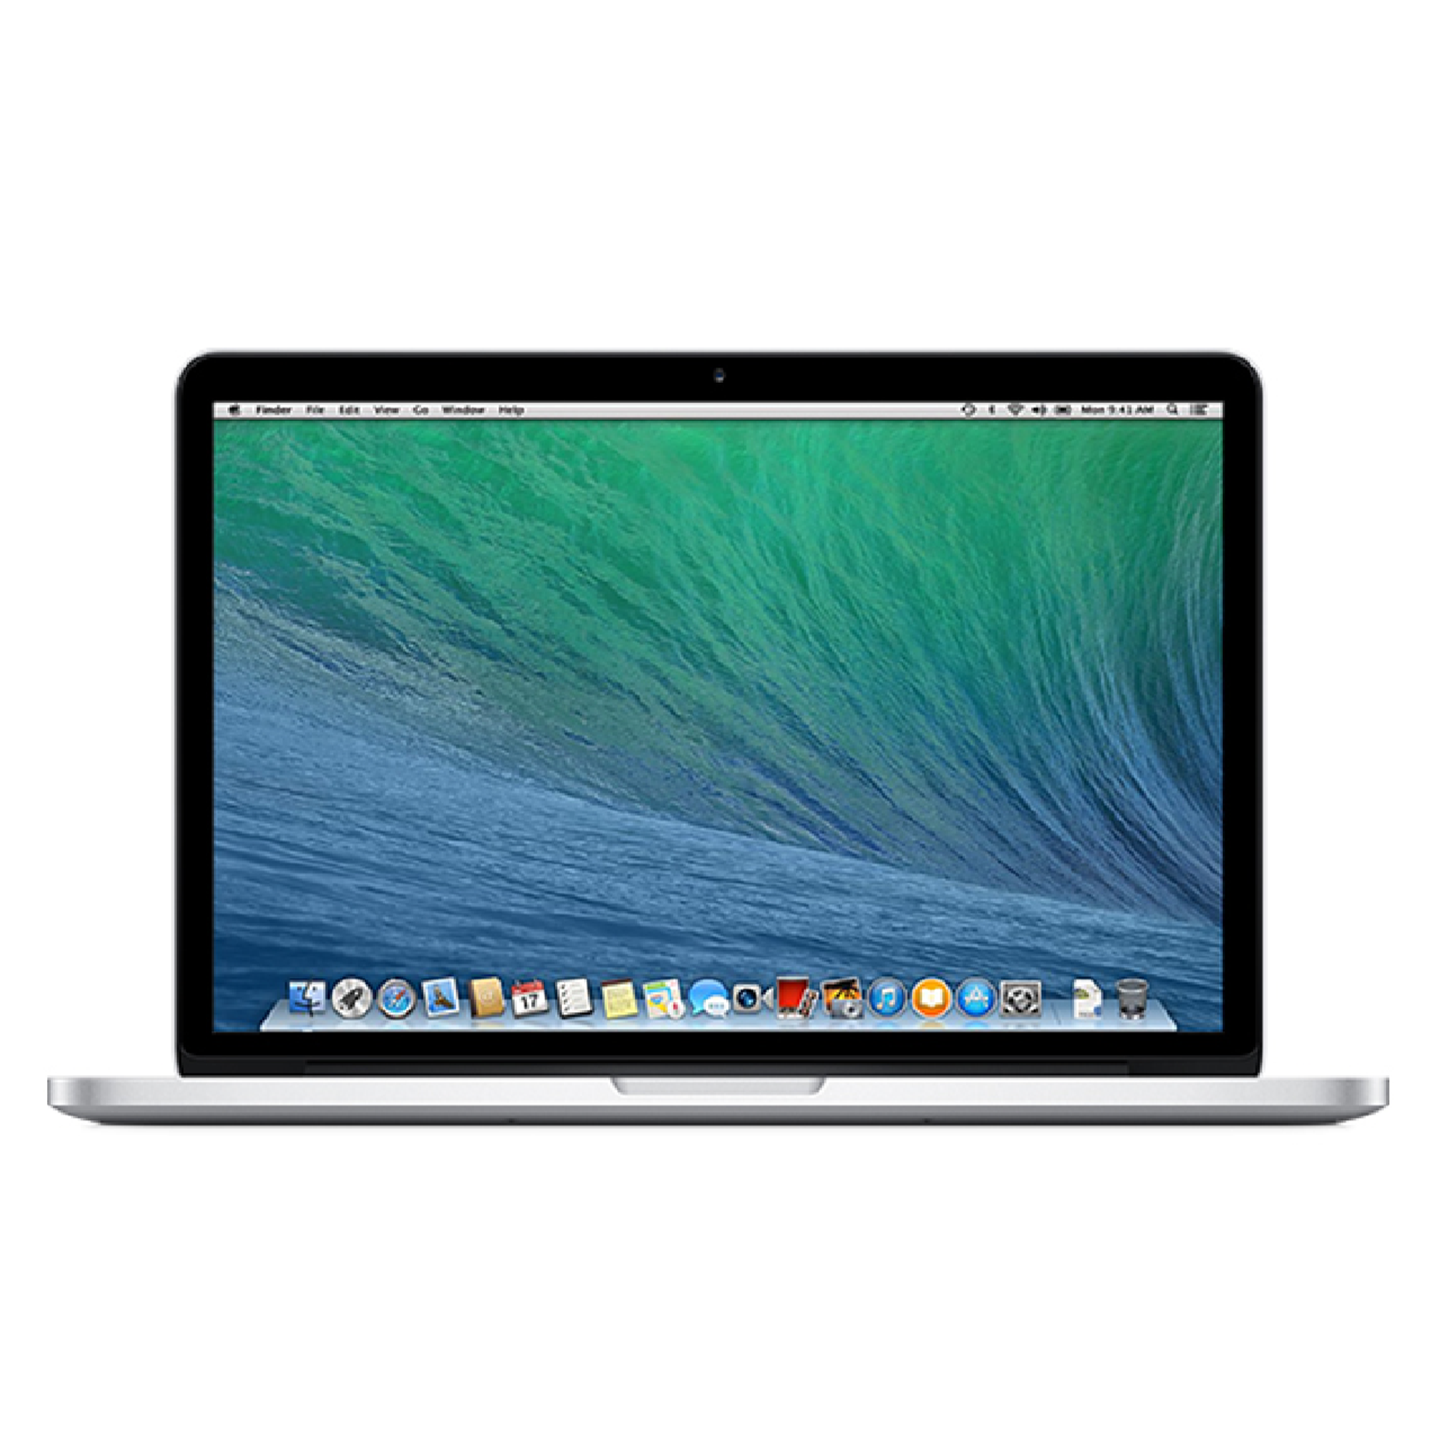 MacBook Pro (Retina, 13-inch, Late 2013)Core i5/8GB/SSD256GB E780